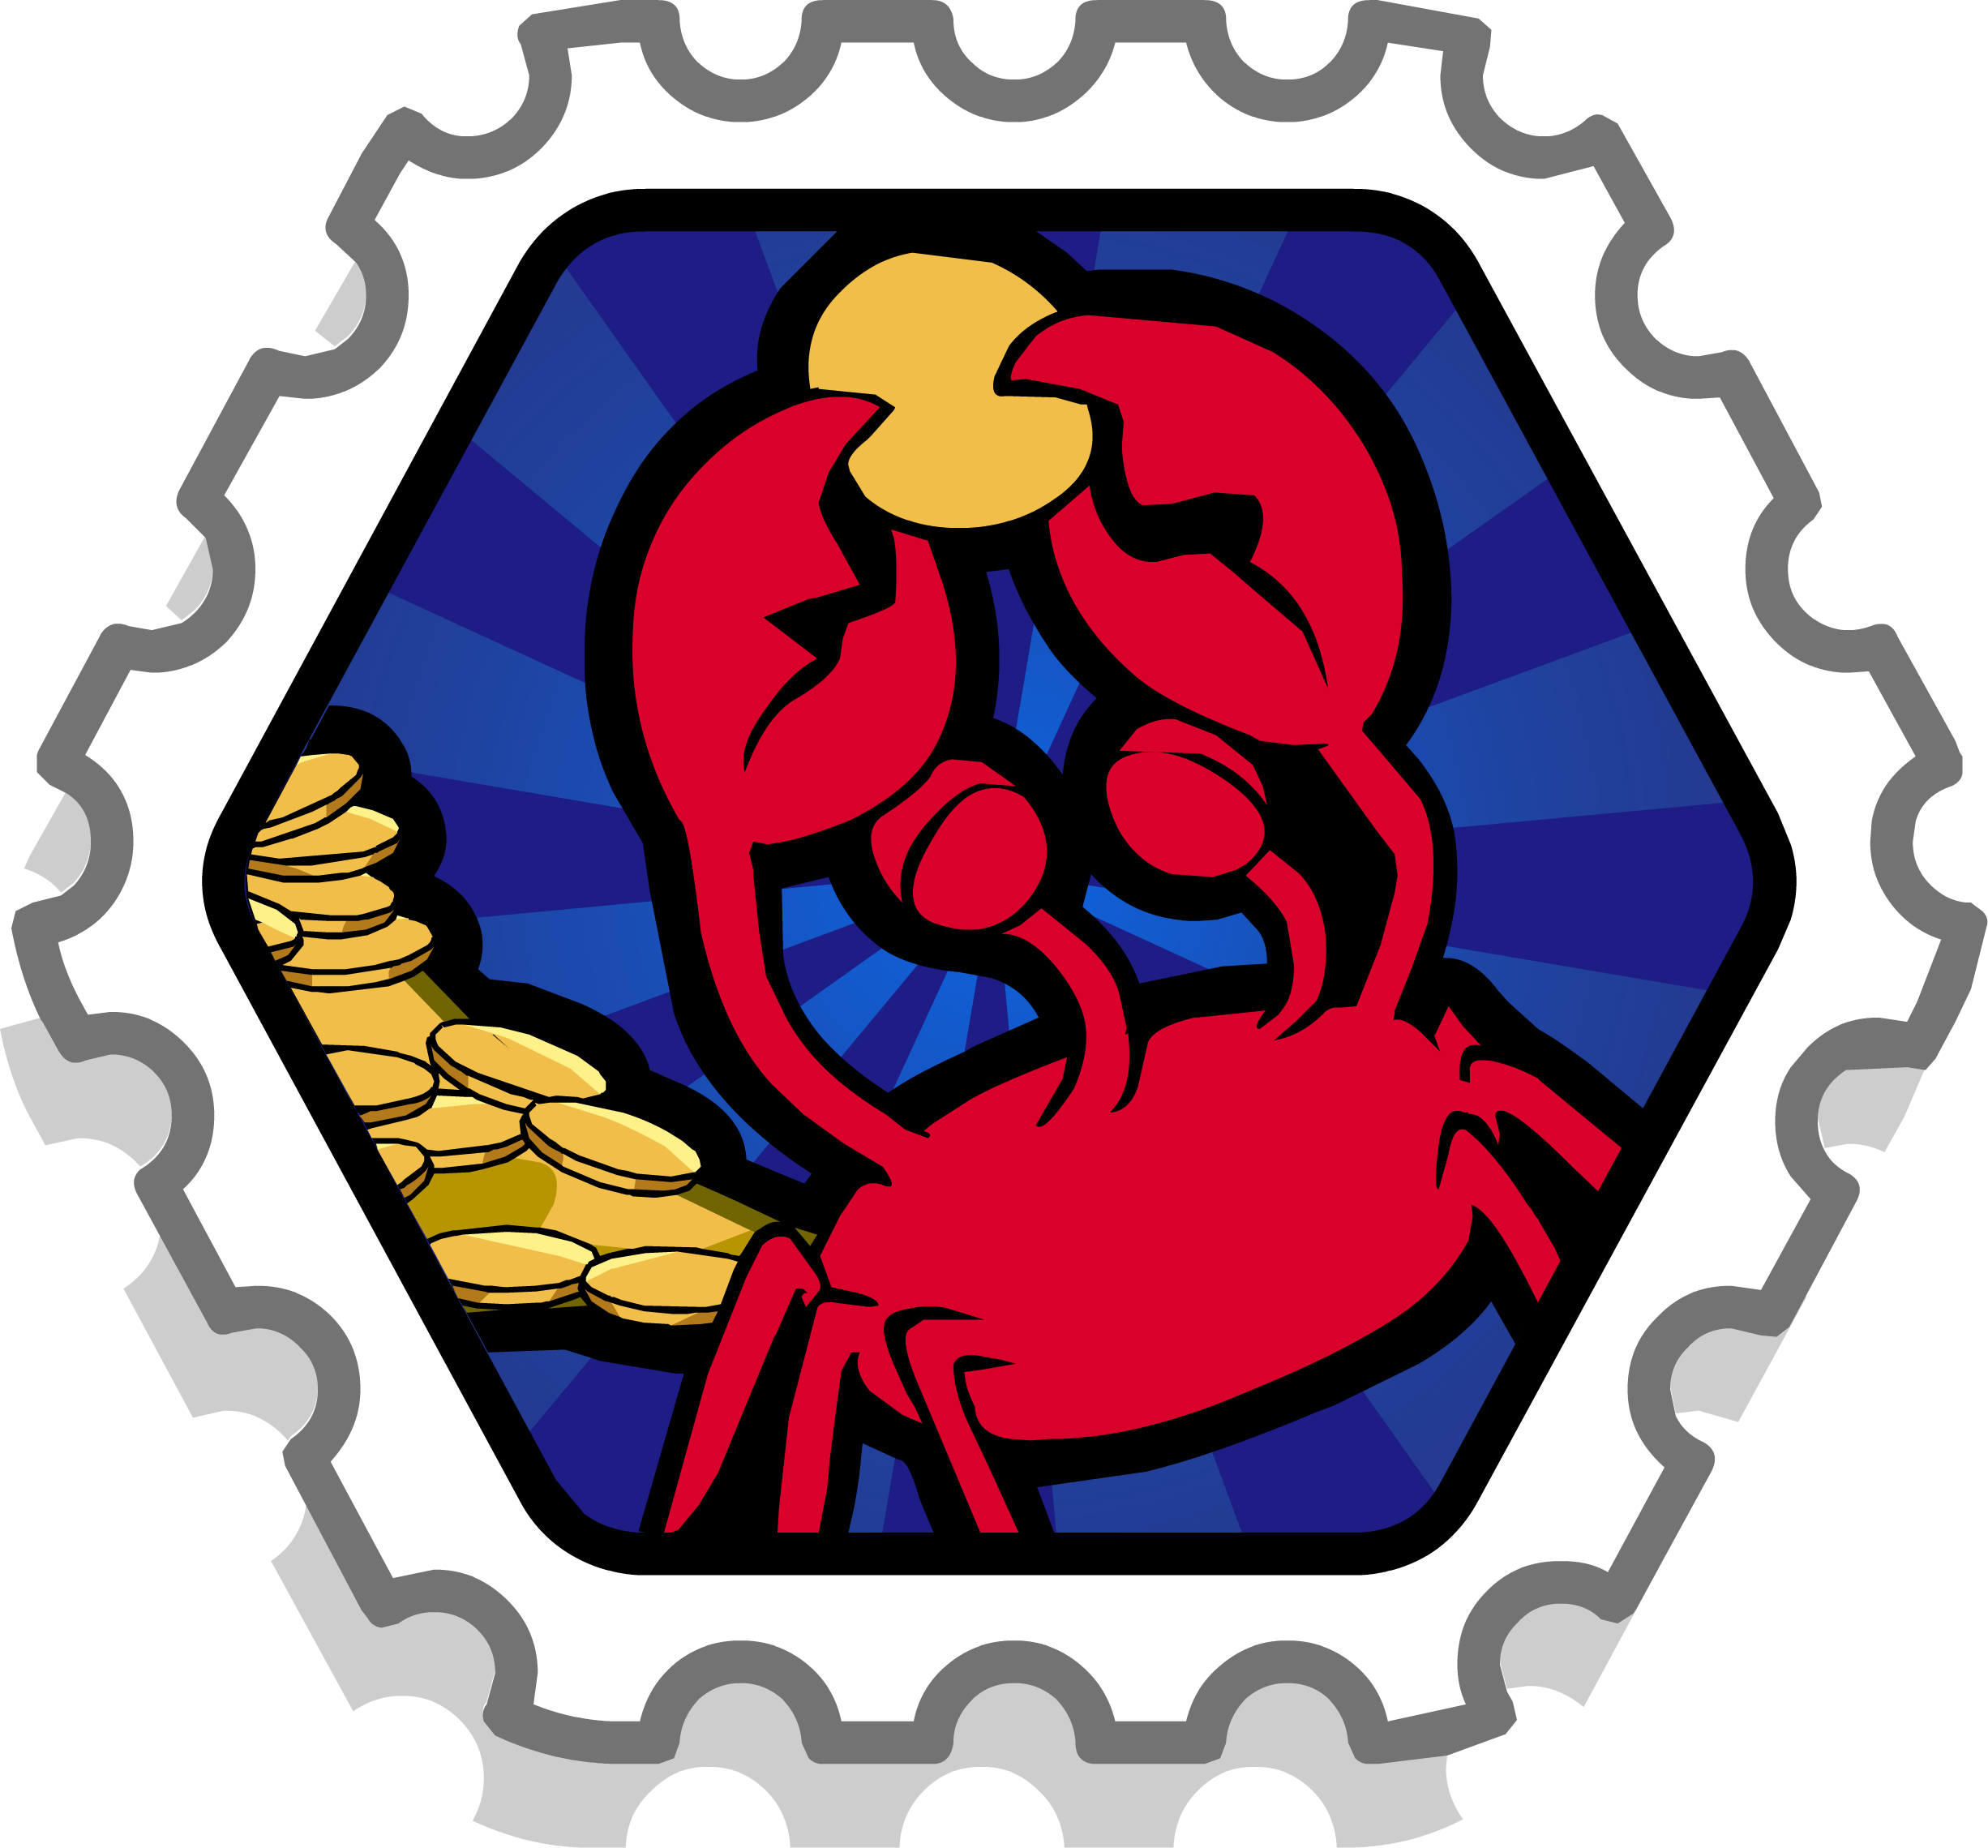 Clipart crab holding money picture library Crab's Treasure Stamp   Club Penguin Rewritten Wiki   FANDOM powered ... picture library